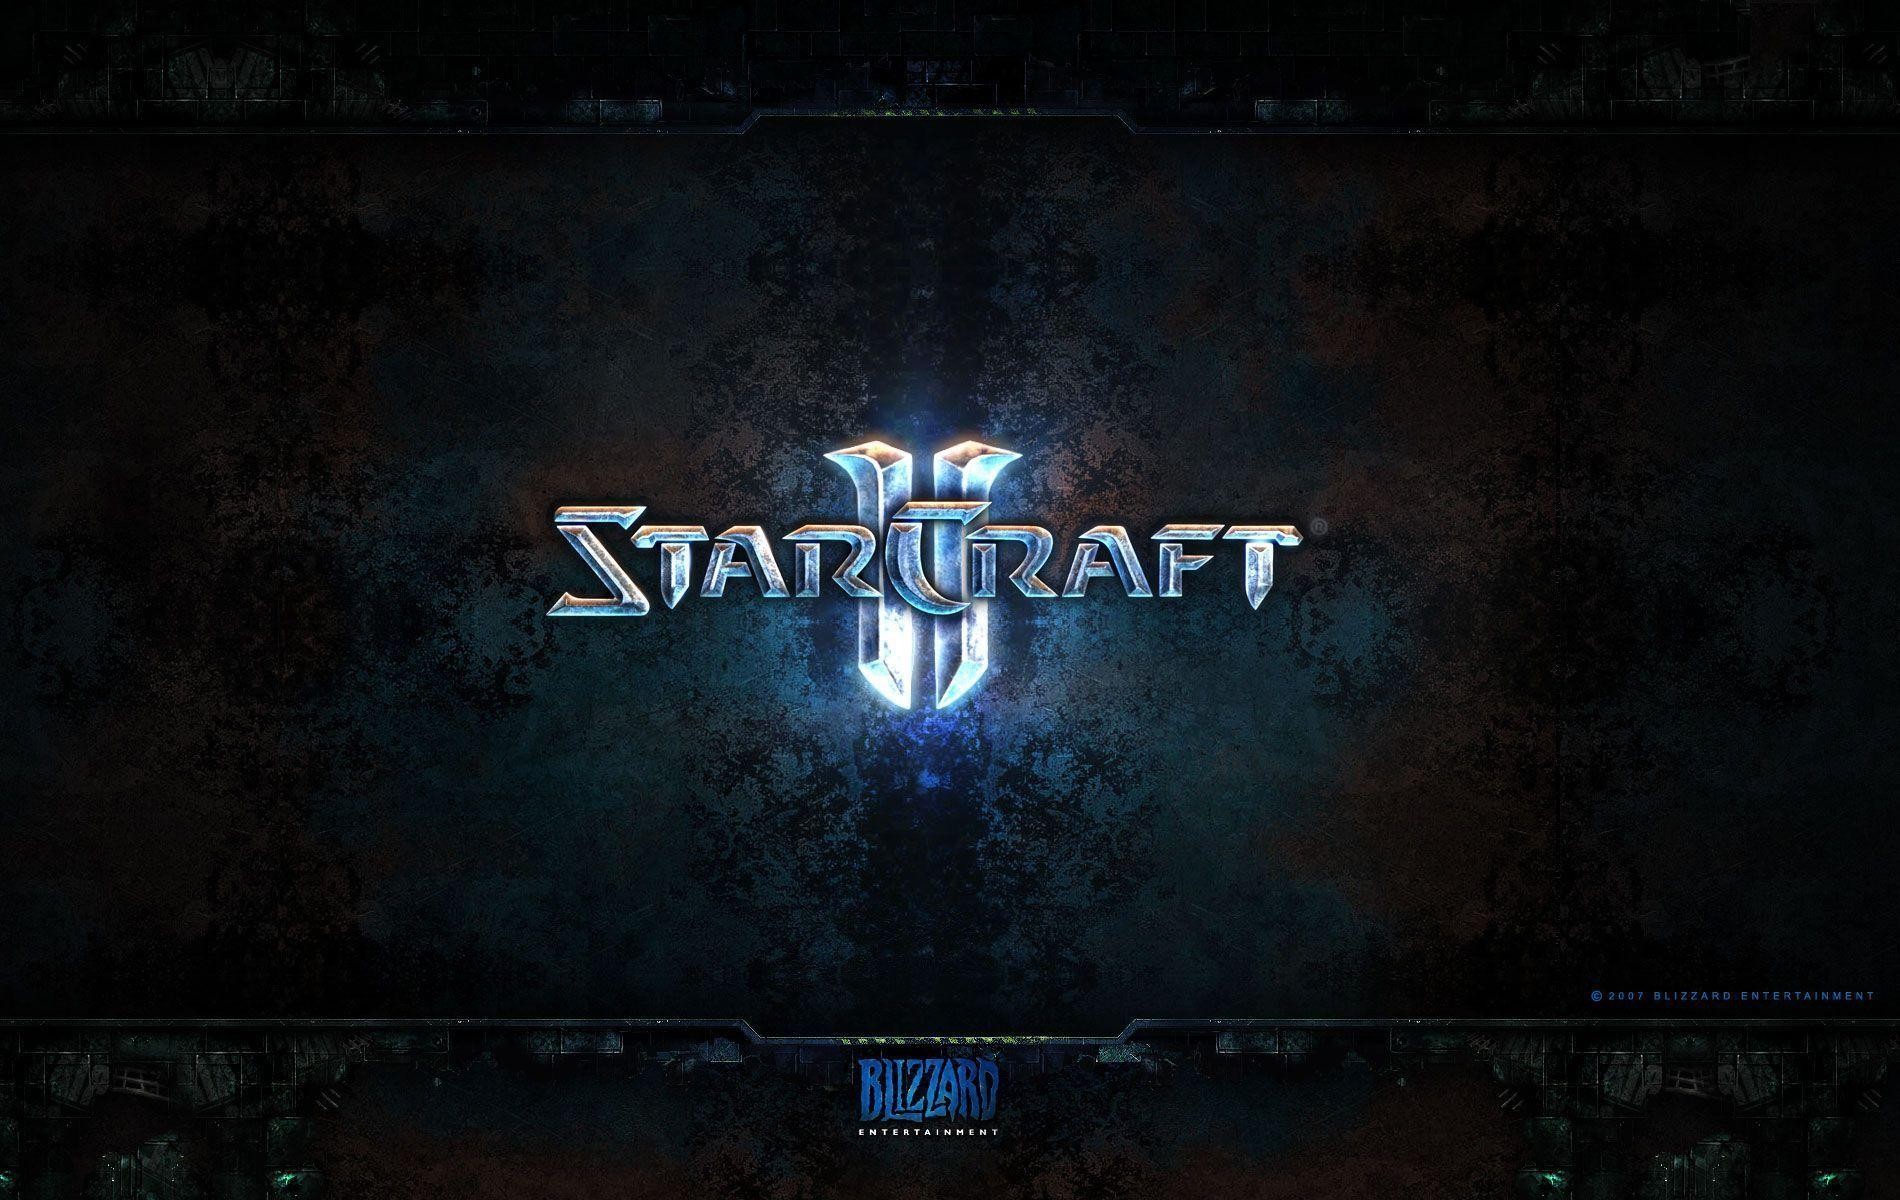 181 Starcraft Wallpapers